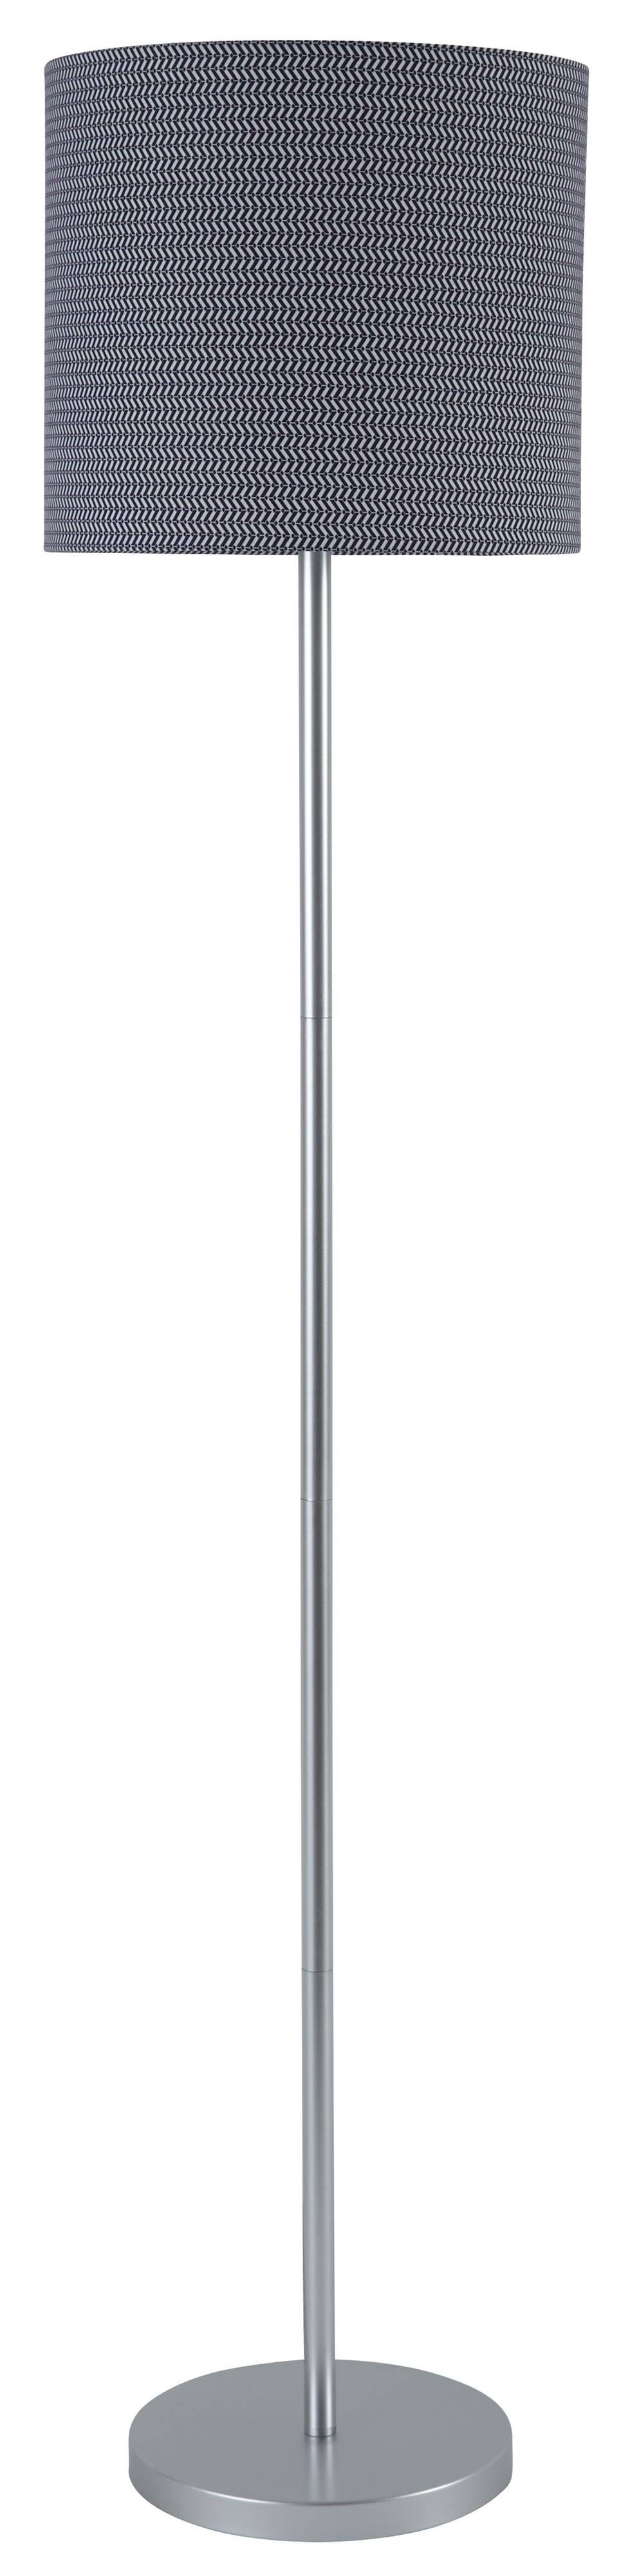 Signature Design by Ashley Lamps - Contemporary Stevonne Metal Floor Lamp - Item Number: L204131